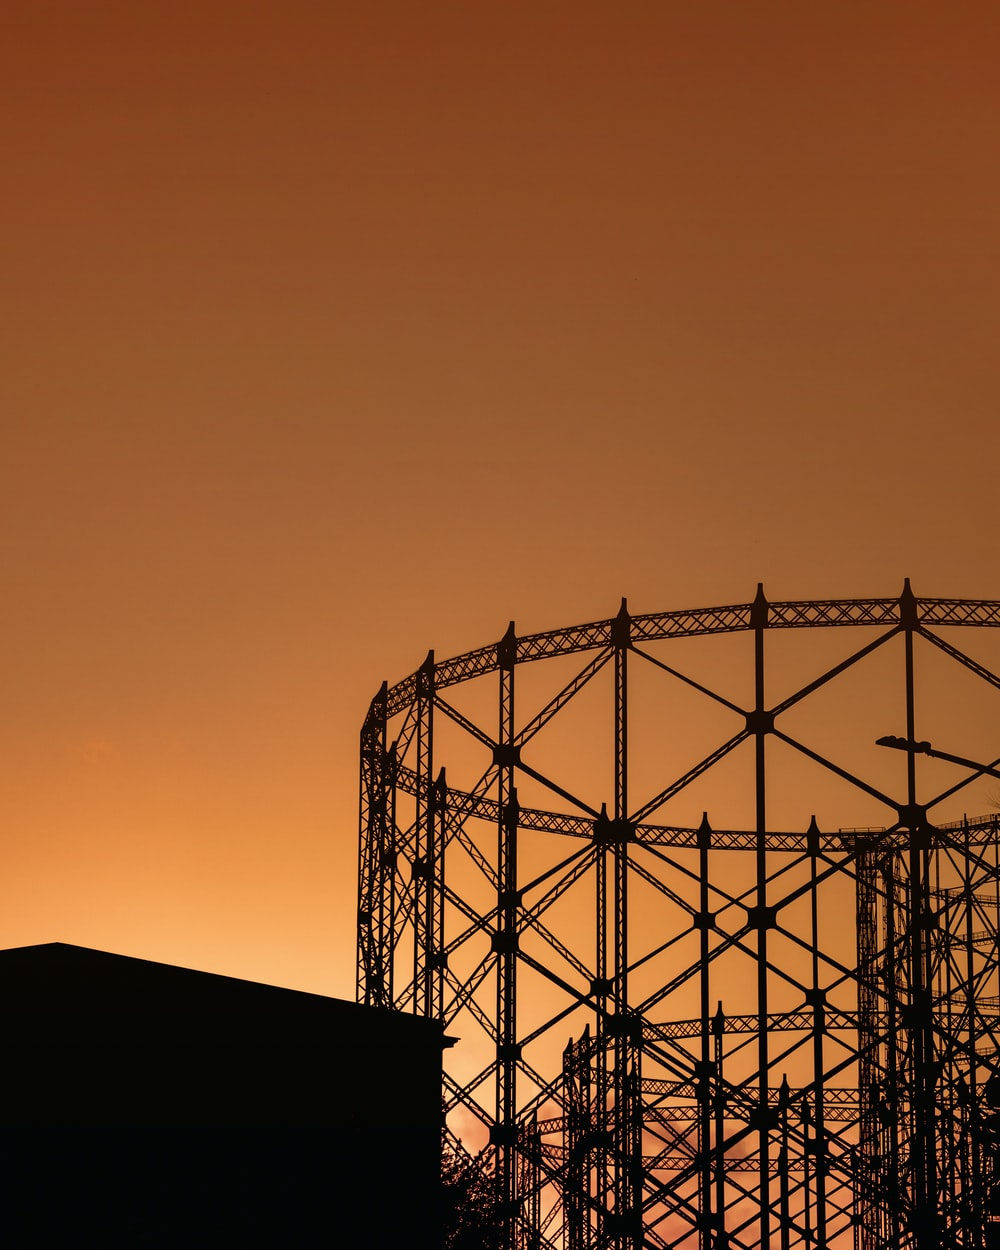 silhouette of metal tower during sunset